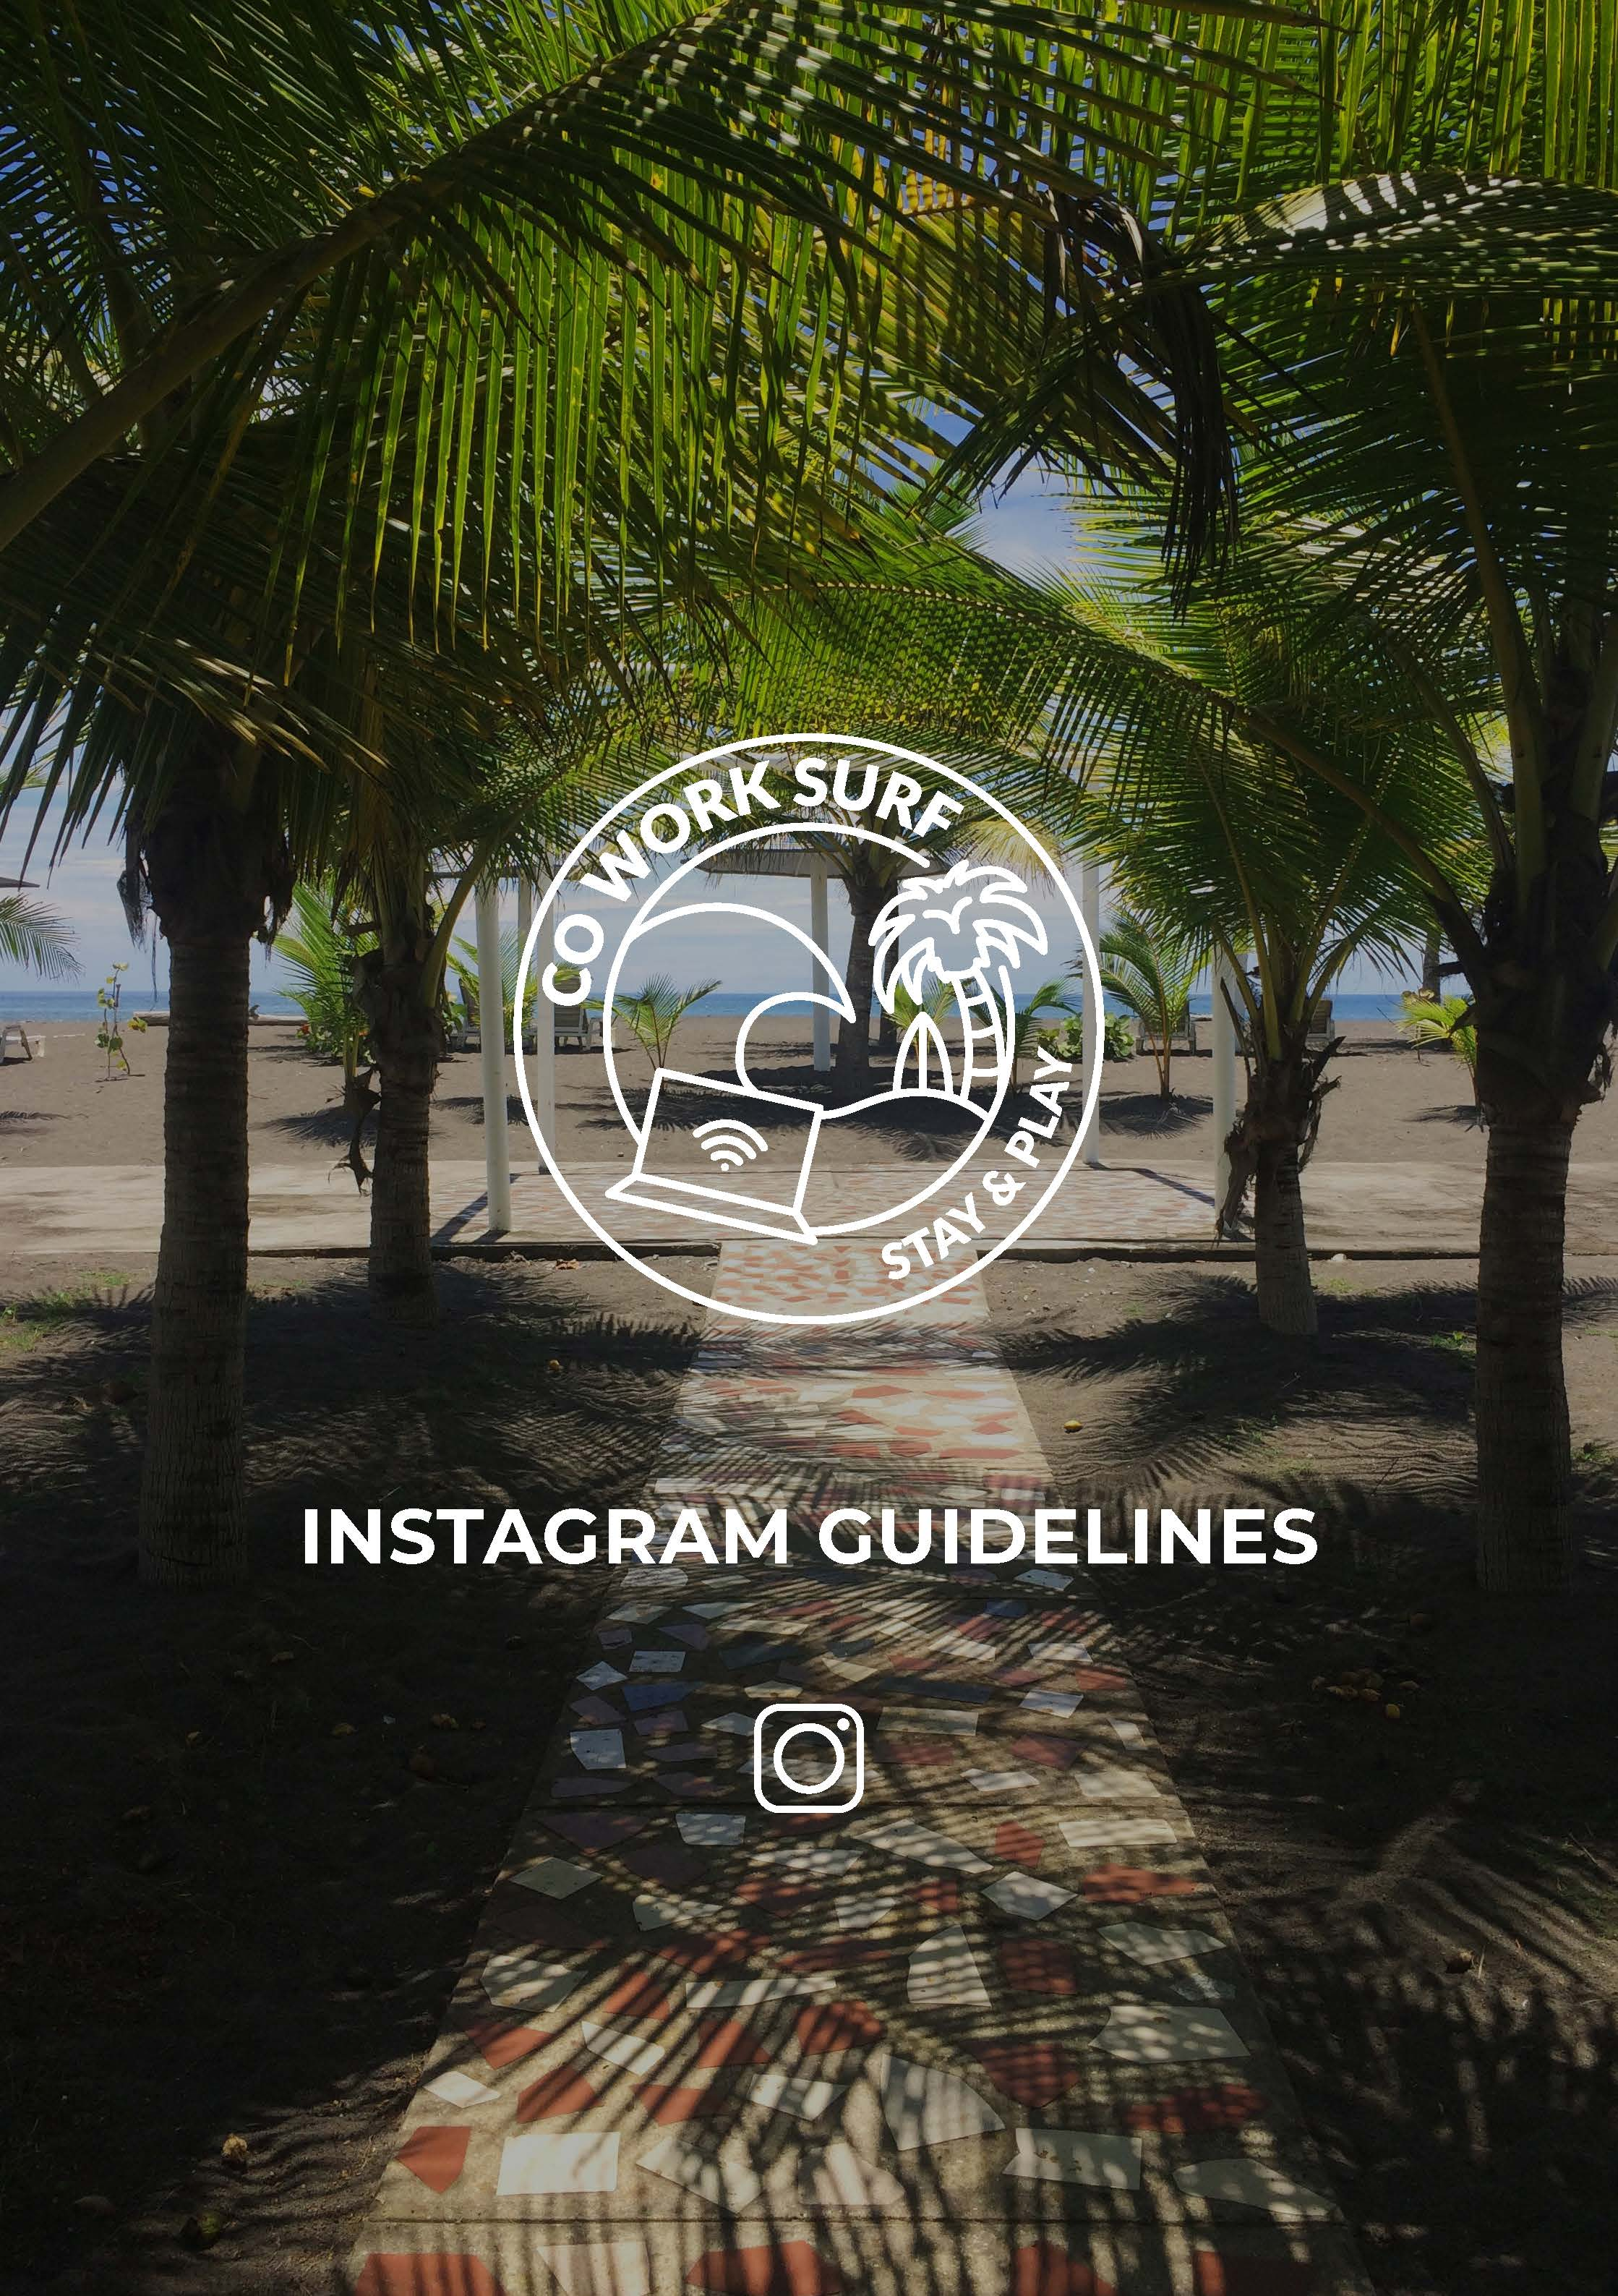 CWS_Insta guidelines_Page_01.jpg